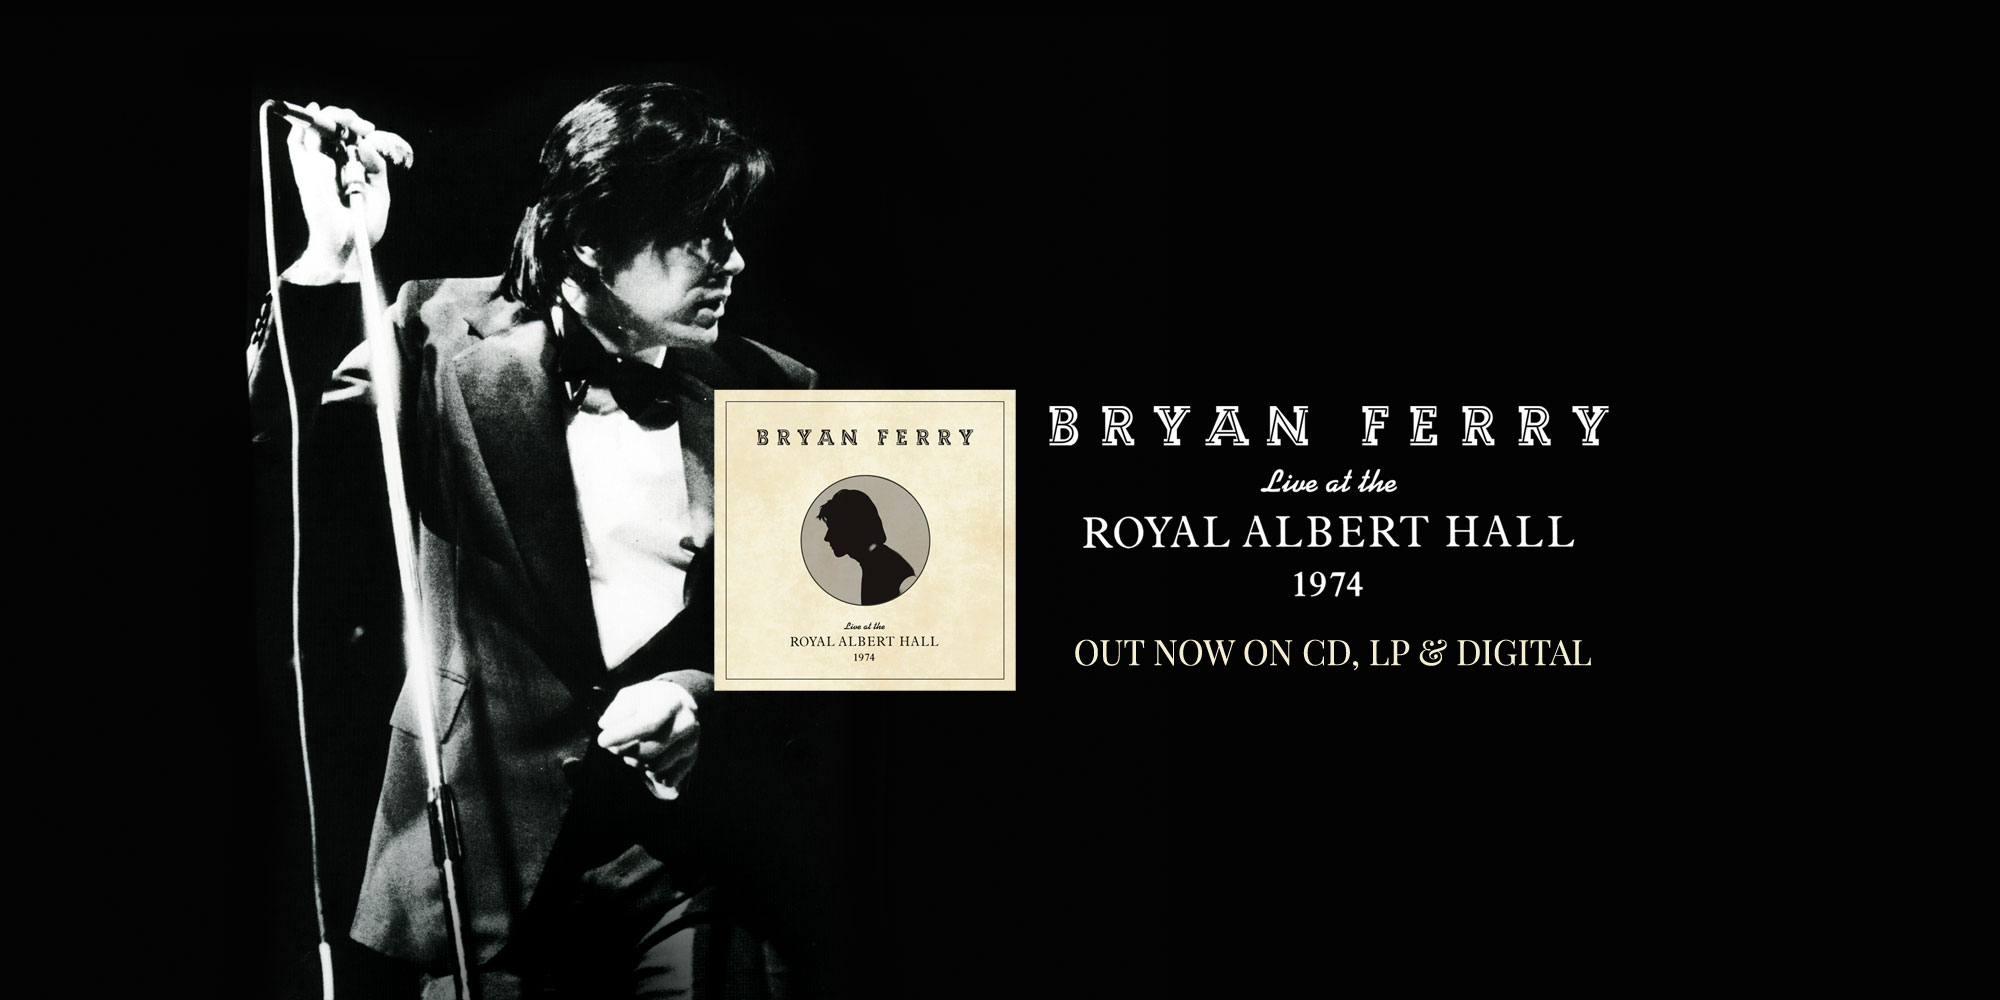 Live at the Royal Albert Hall 1974 Out Now!